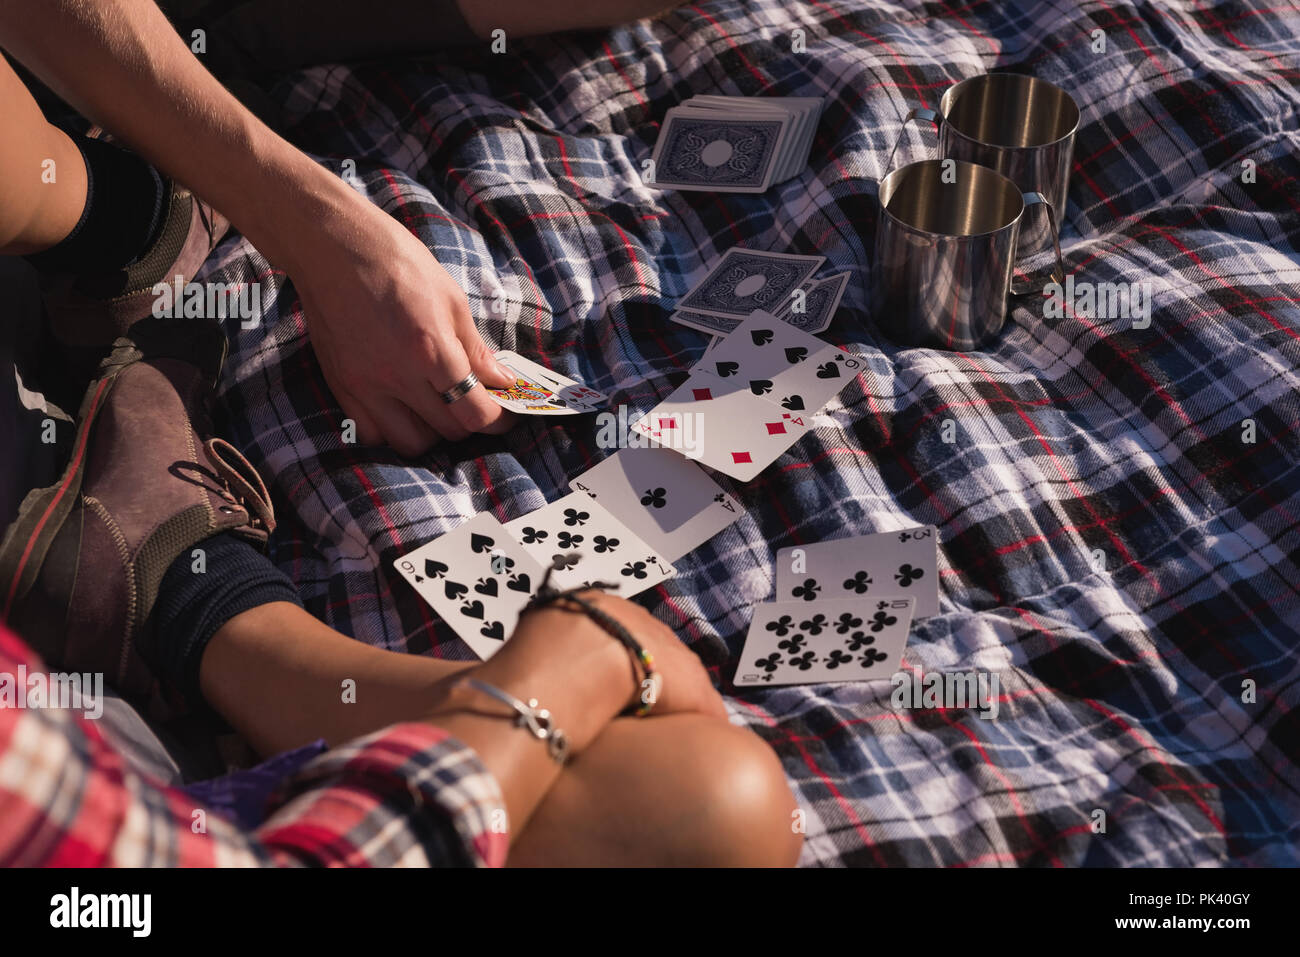 Couple playing with playing cards - Stock Image